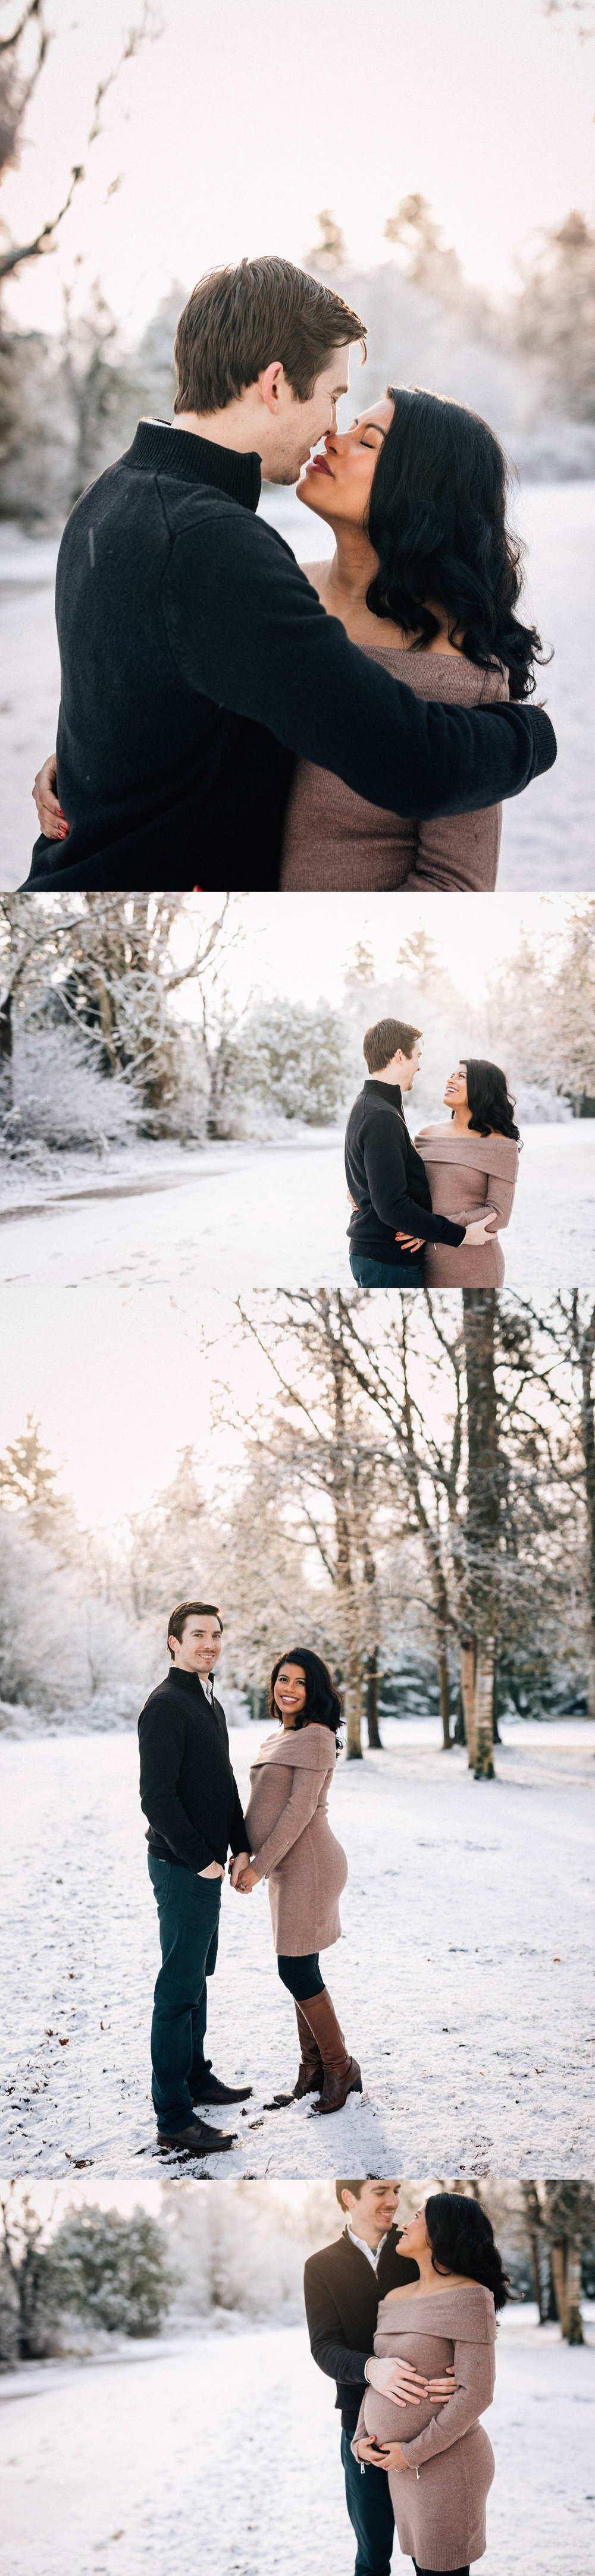 ashley vos seattle maternity wedding photographer lifestyle photography pnw-10.jpg